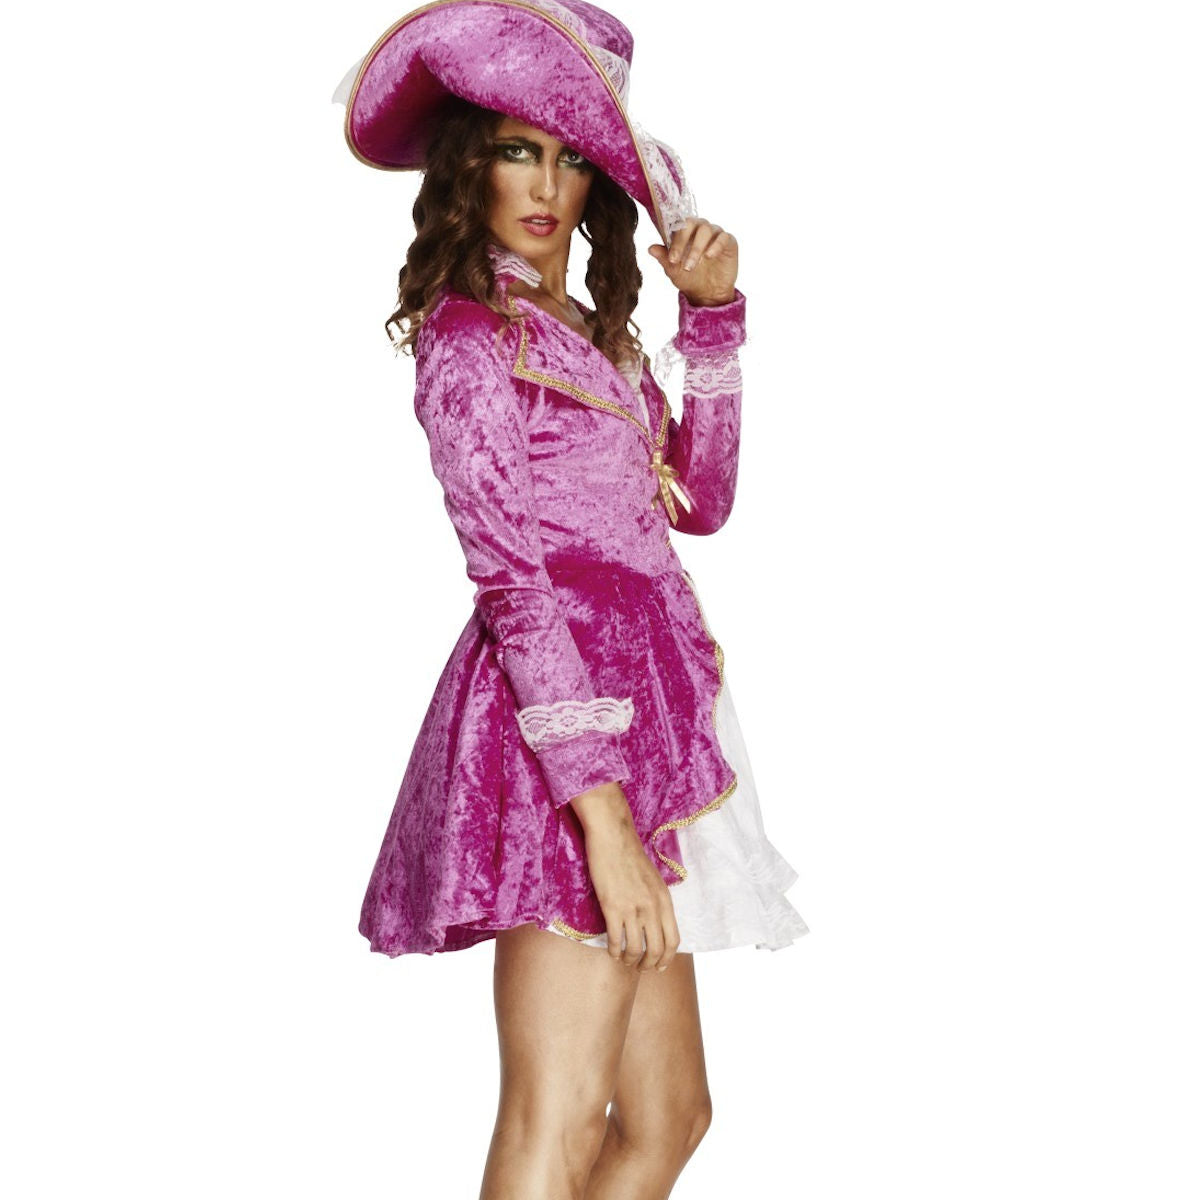 Pirate's Treasure Women's Costume Pink with Hat